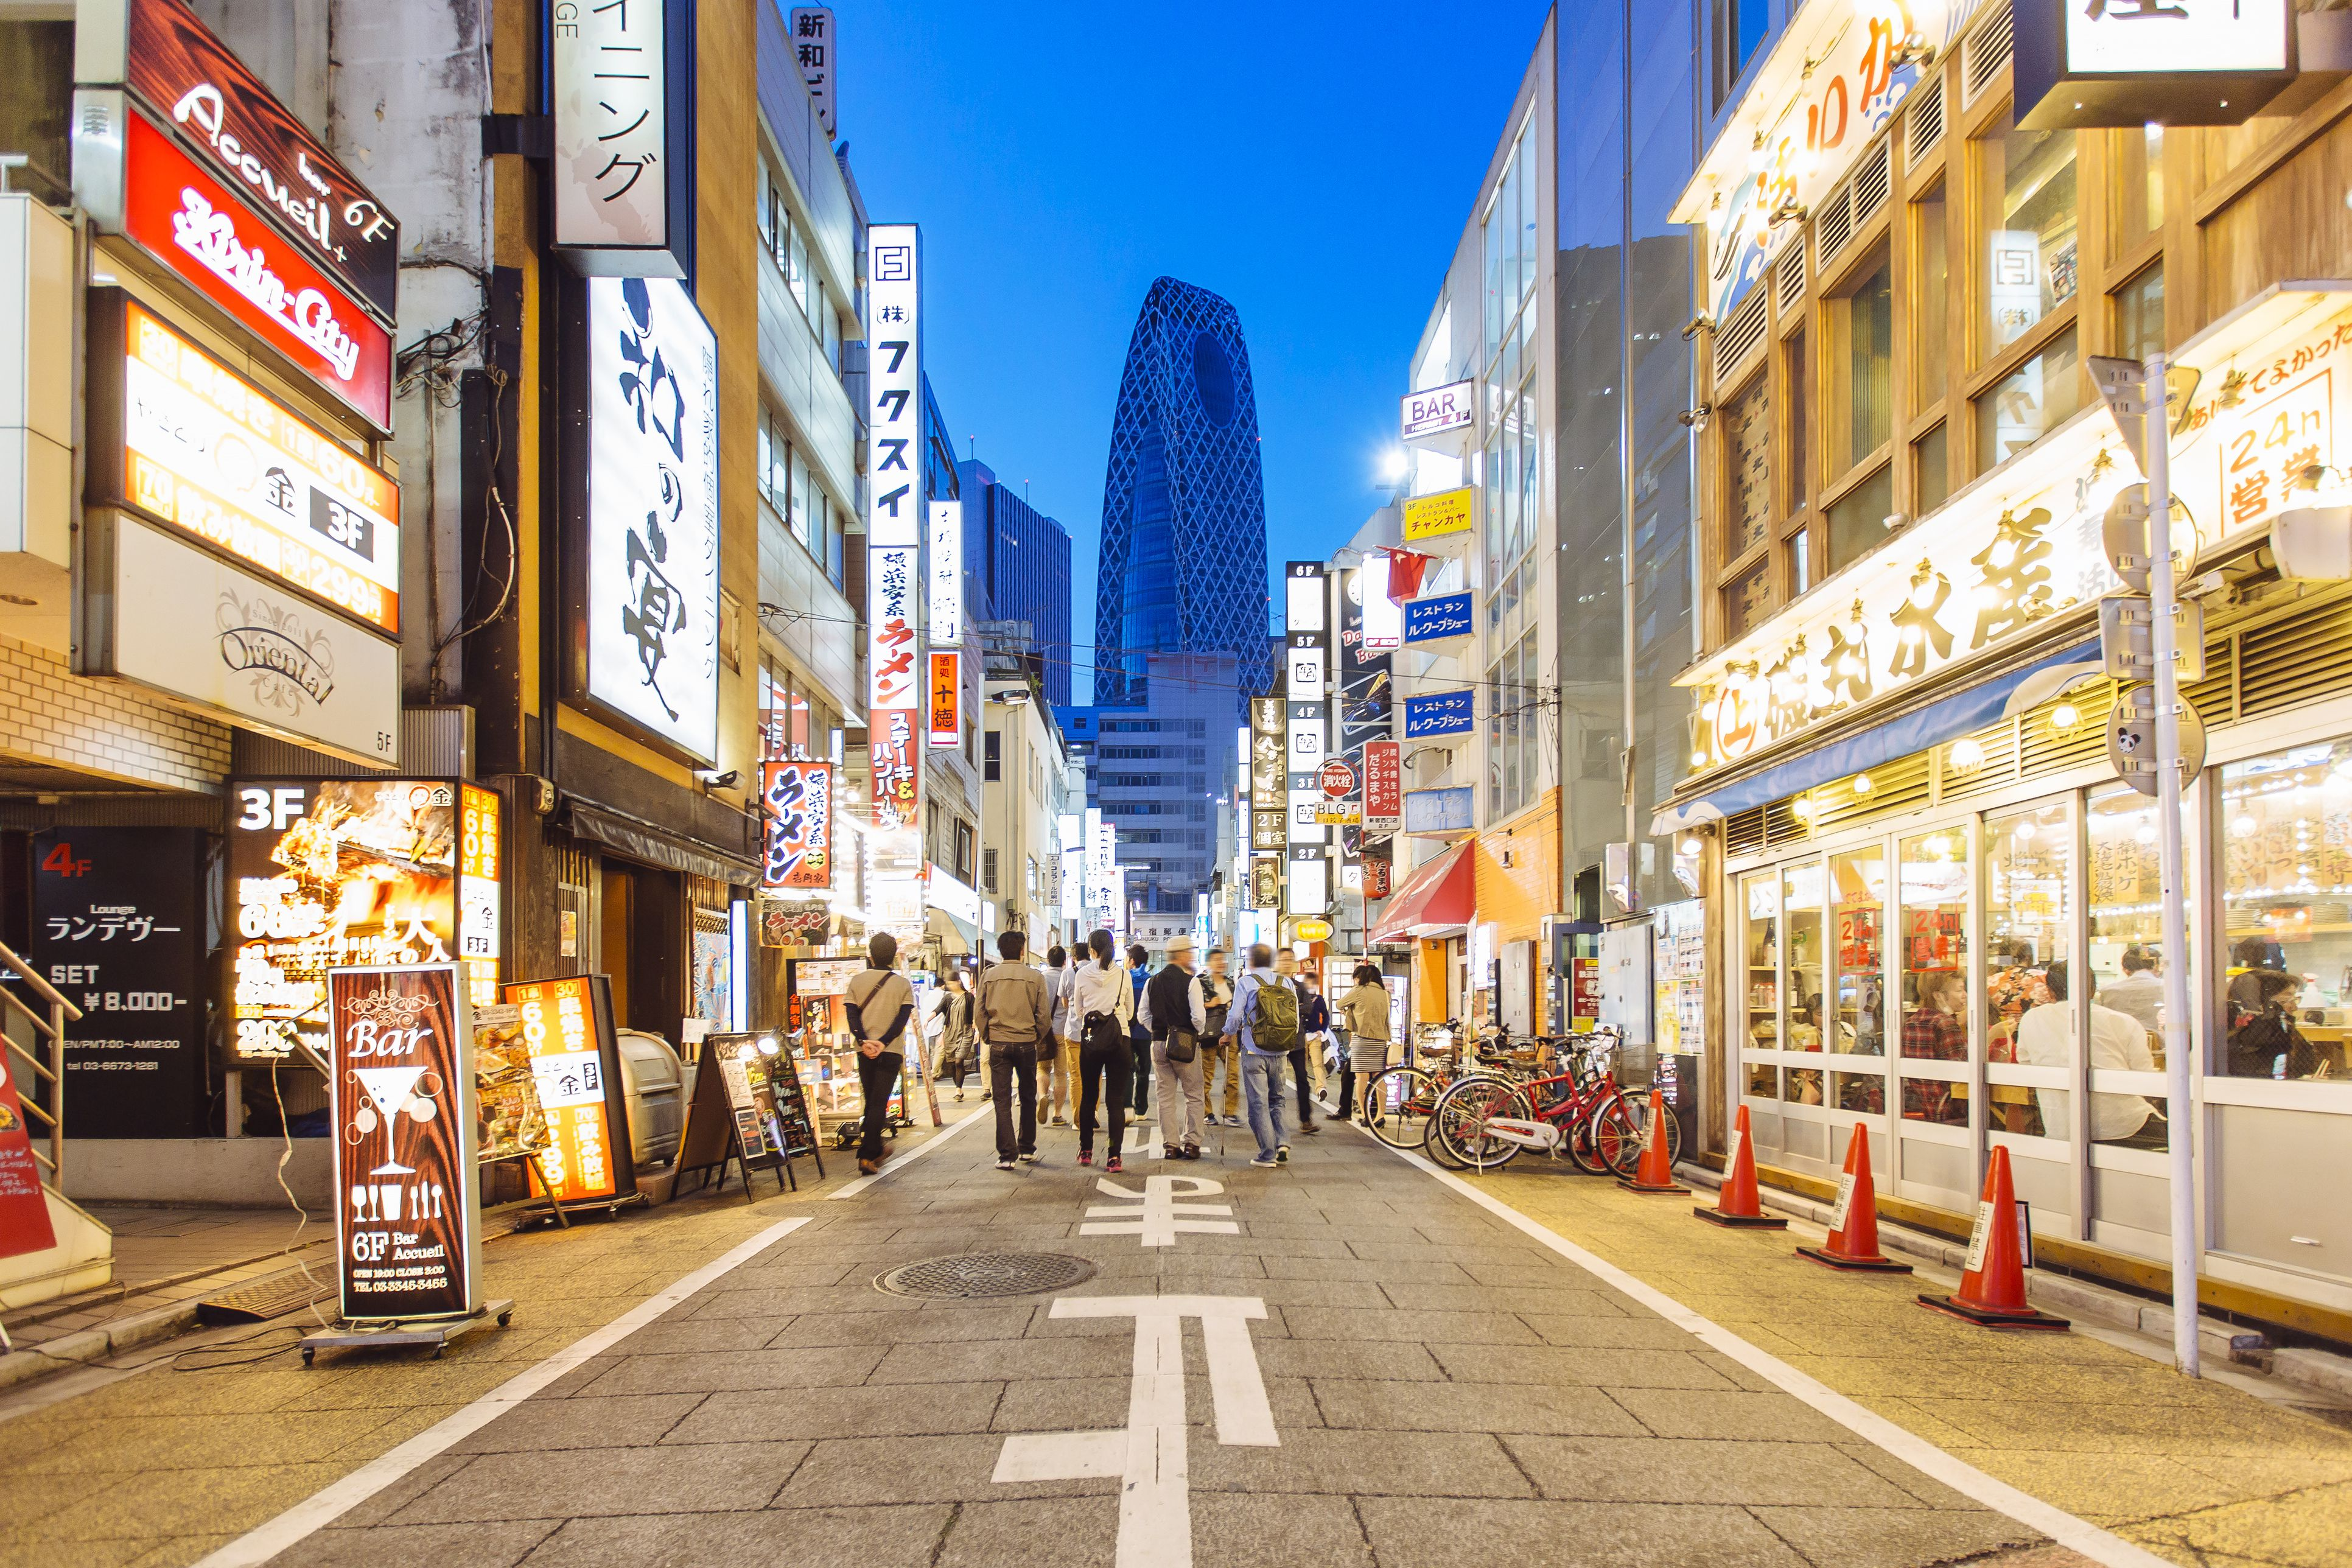 A Traveler's Guide to Japanese Currency: The Yen